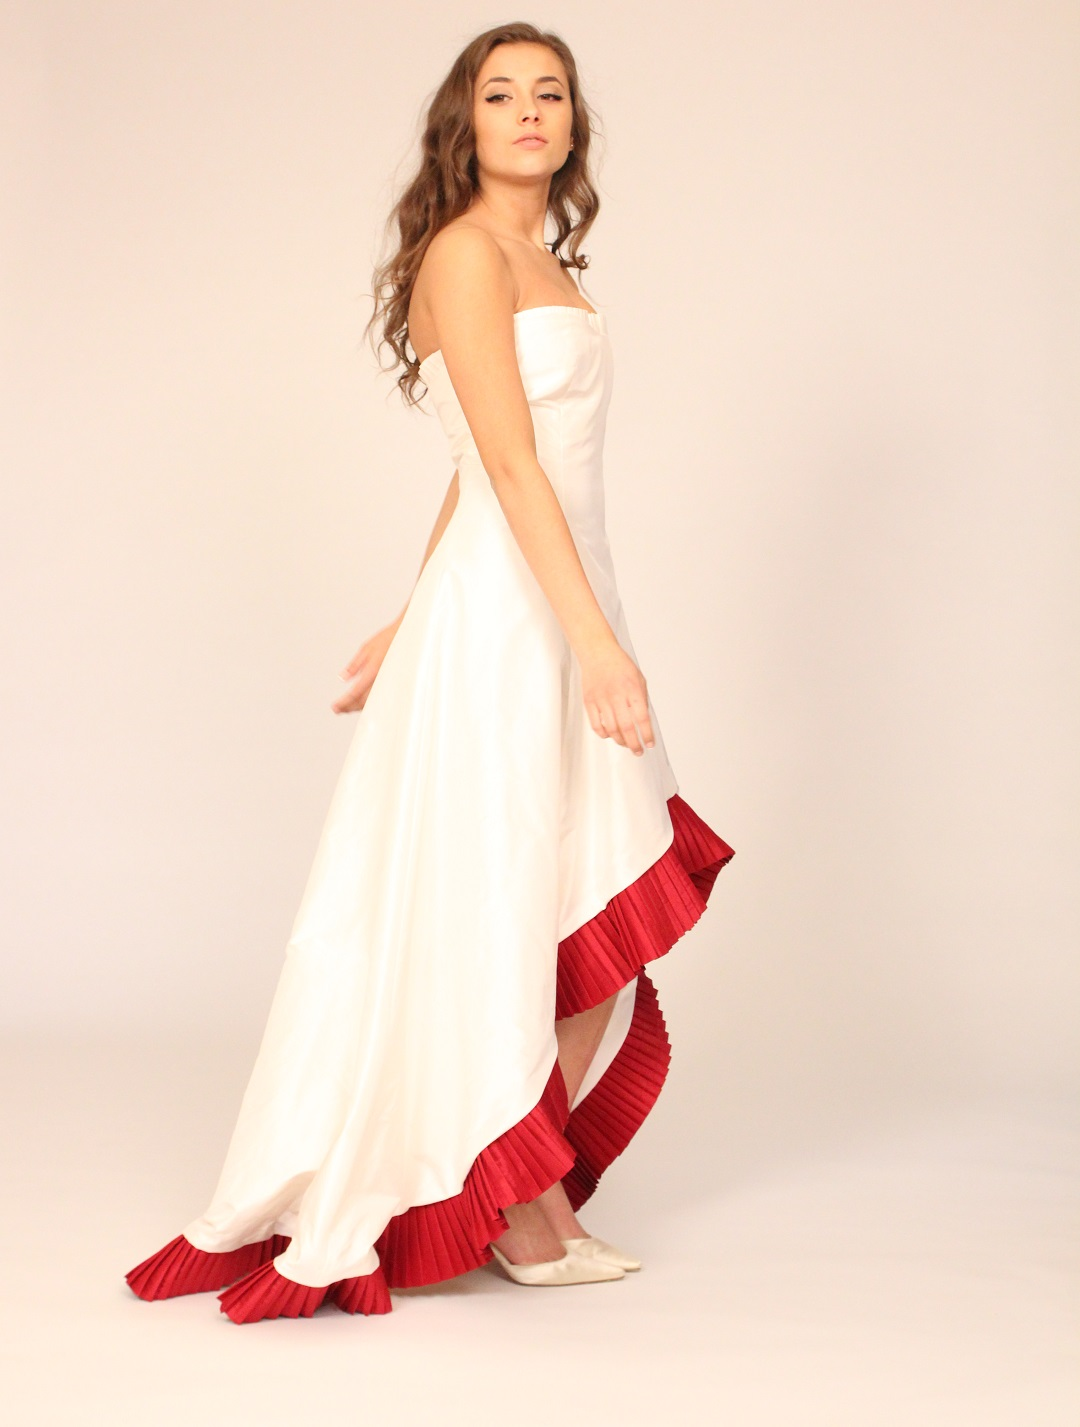 Flamenco Wedding Gown (2) (2016_07_02 22_56_22 UTC)